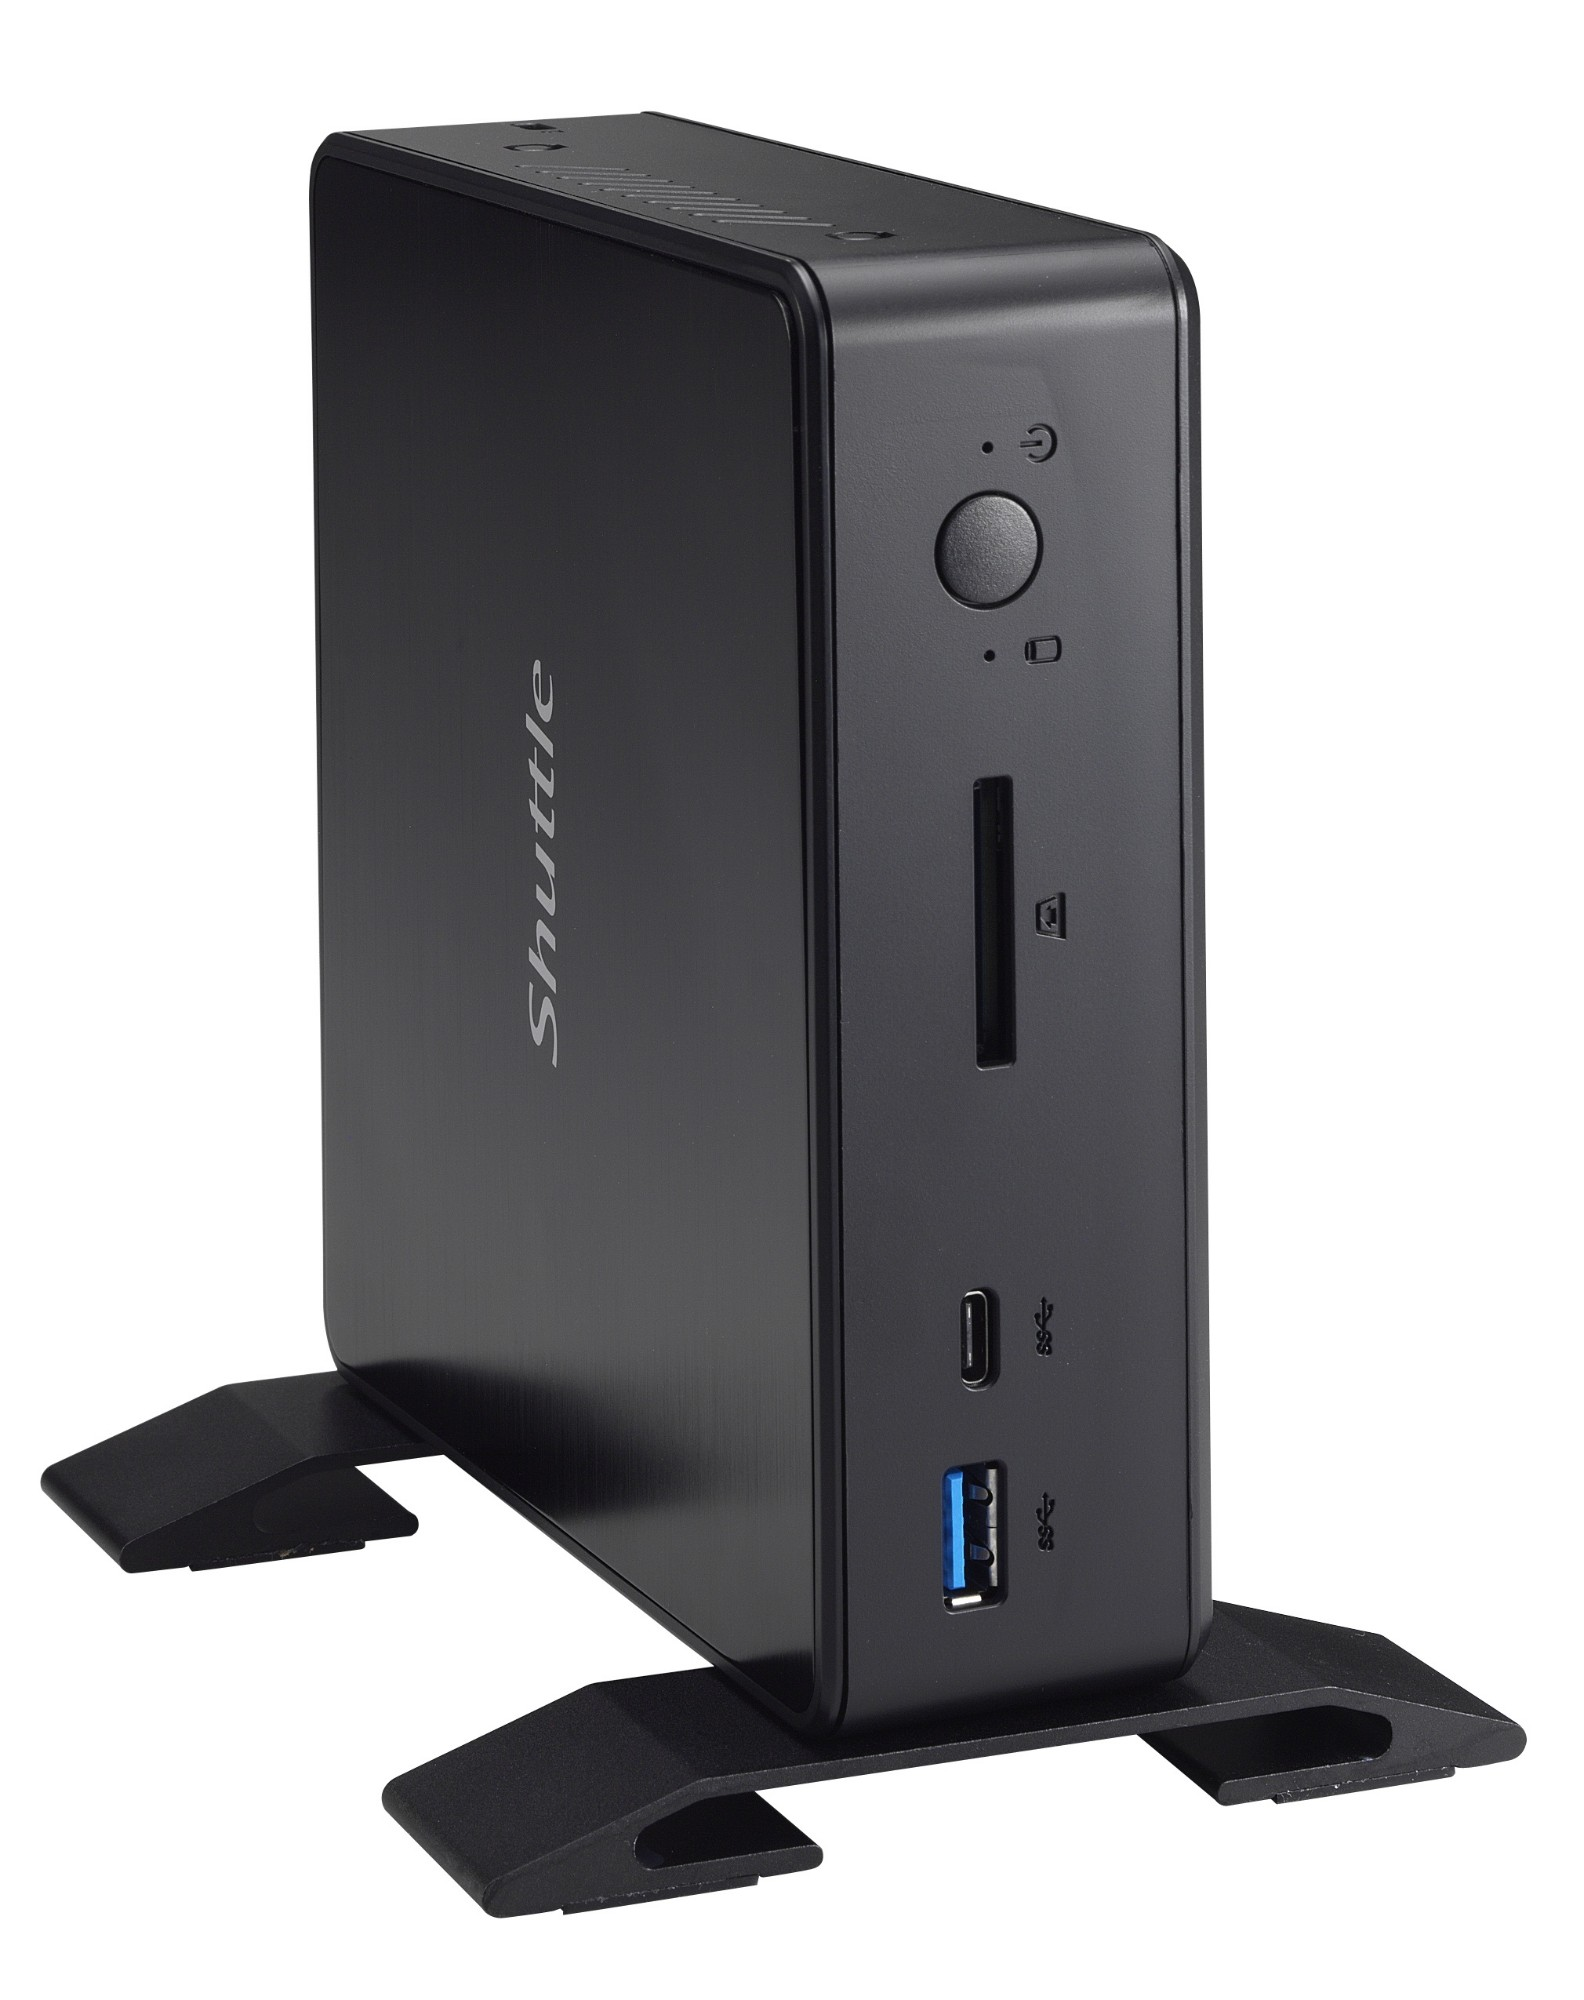 Shuttle XPC nano NC03U7 Intel SoC BGA 1356 2.70GHz i7-7500U Nettop Black PC/workstation barebone